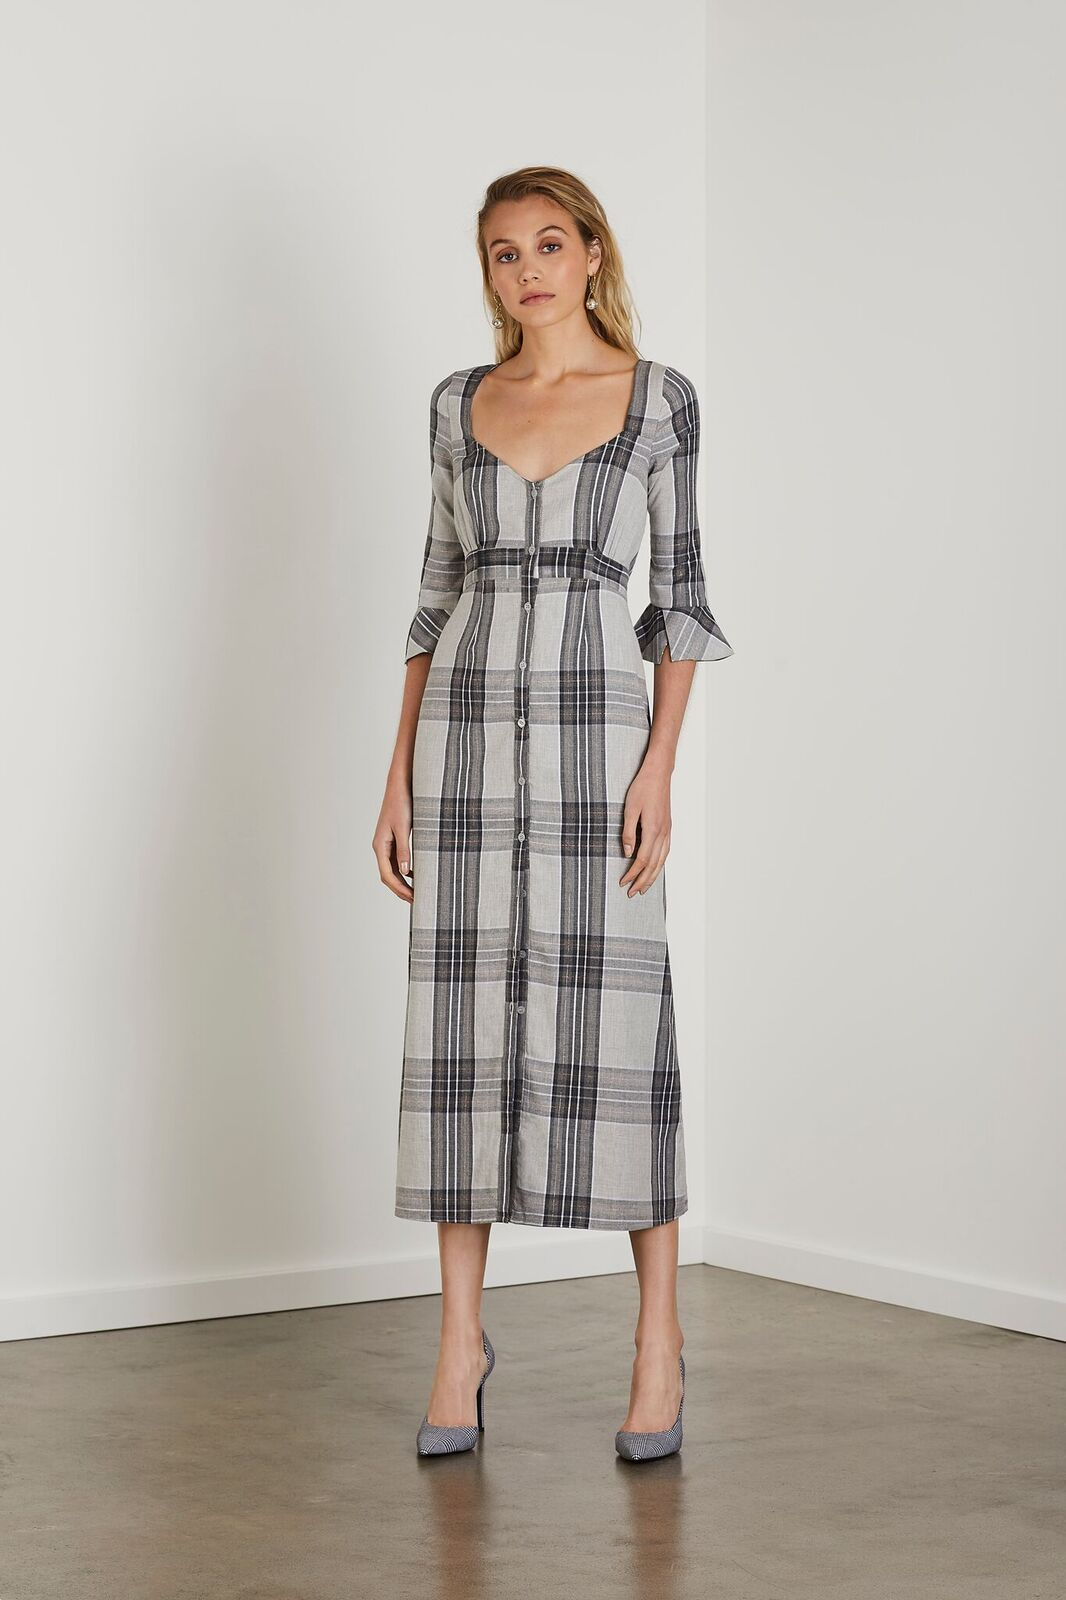 STEELE NADINE MIDI DRESS